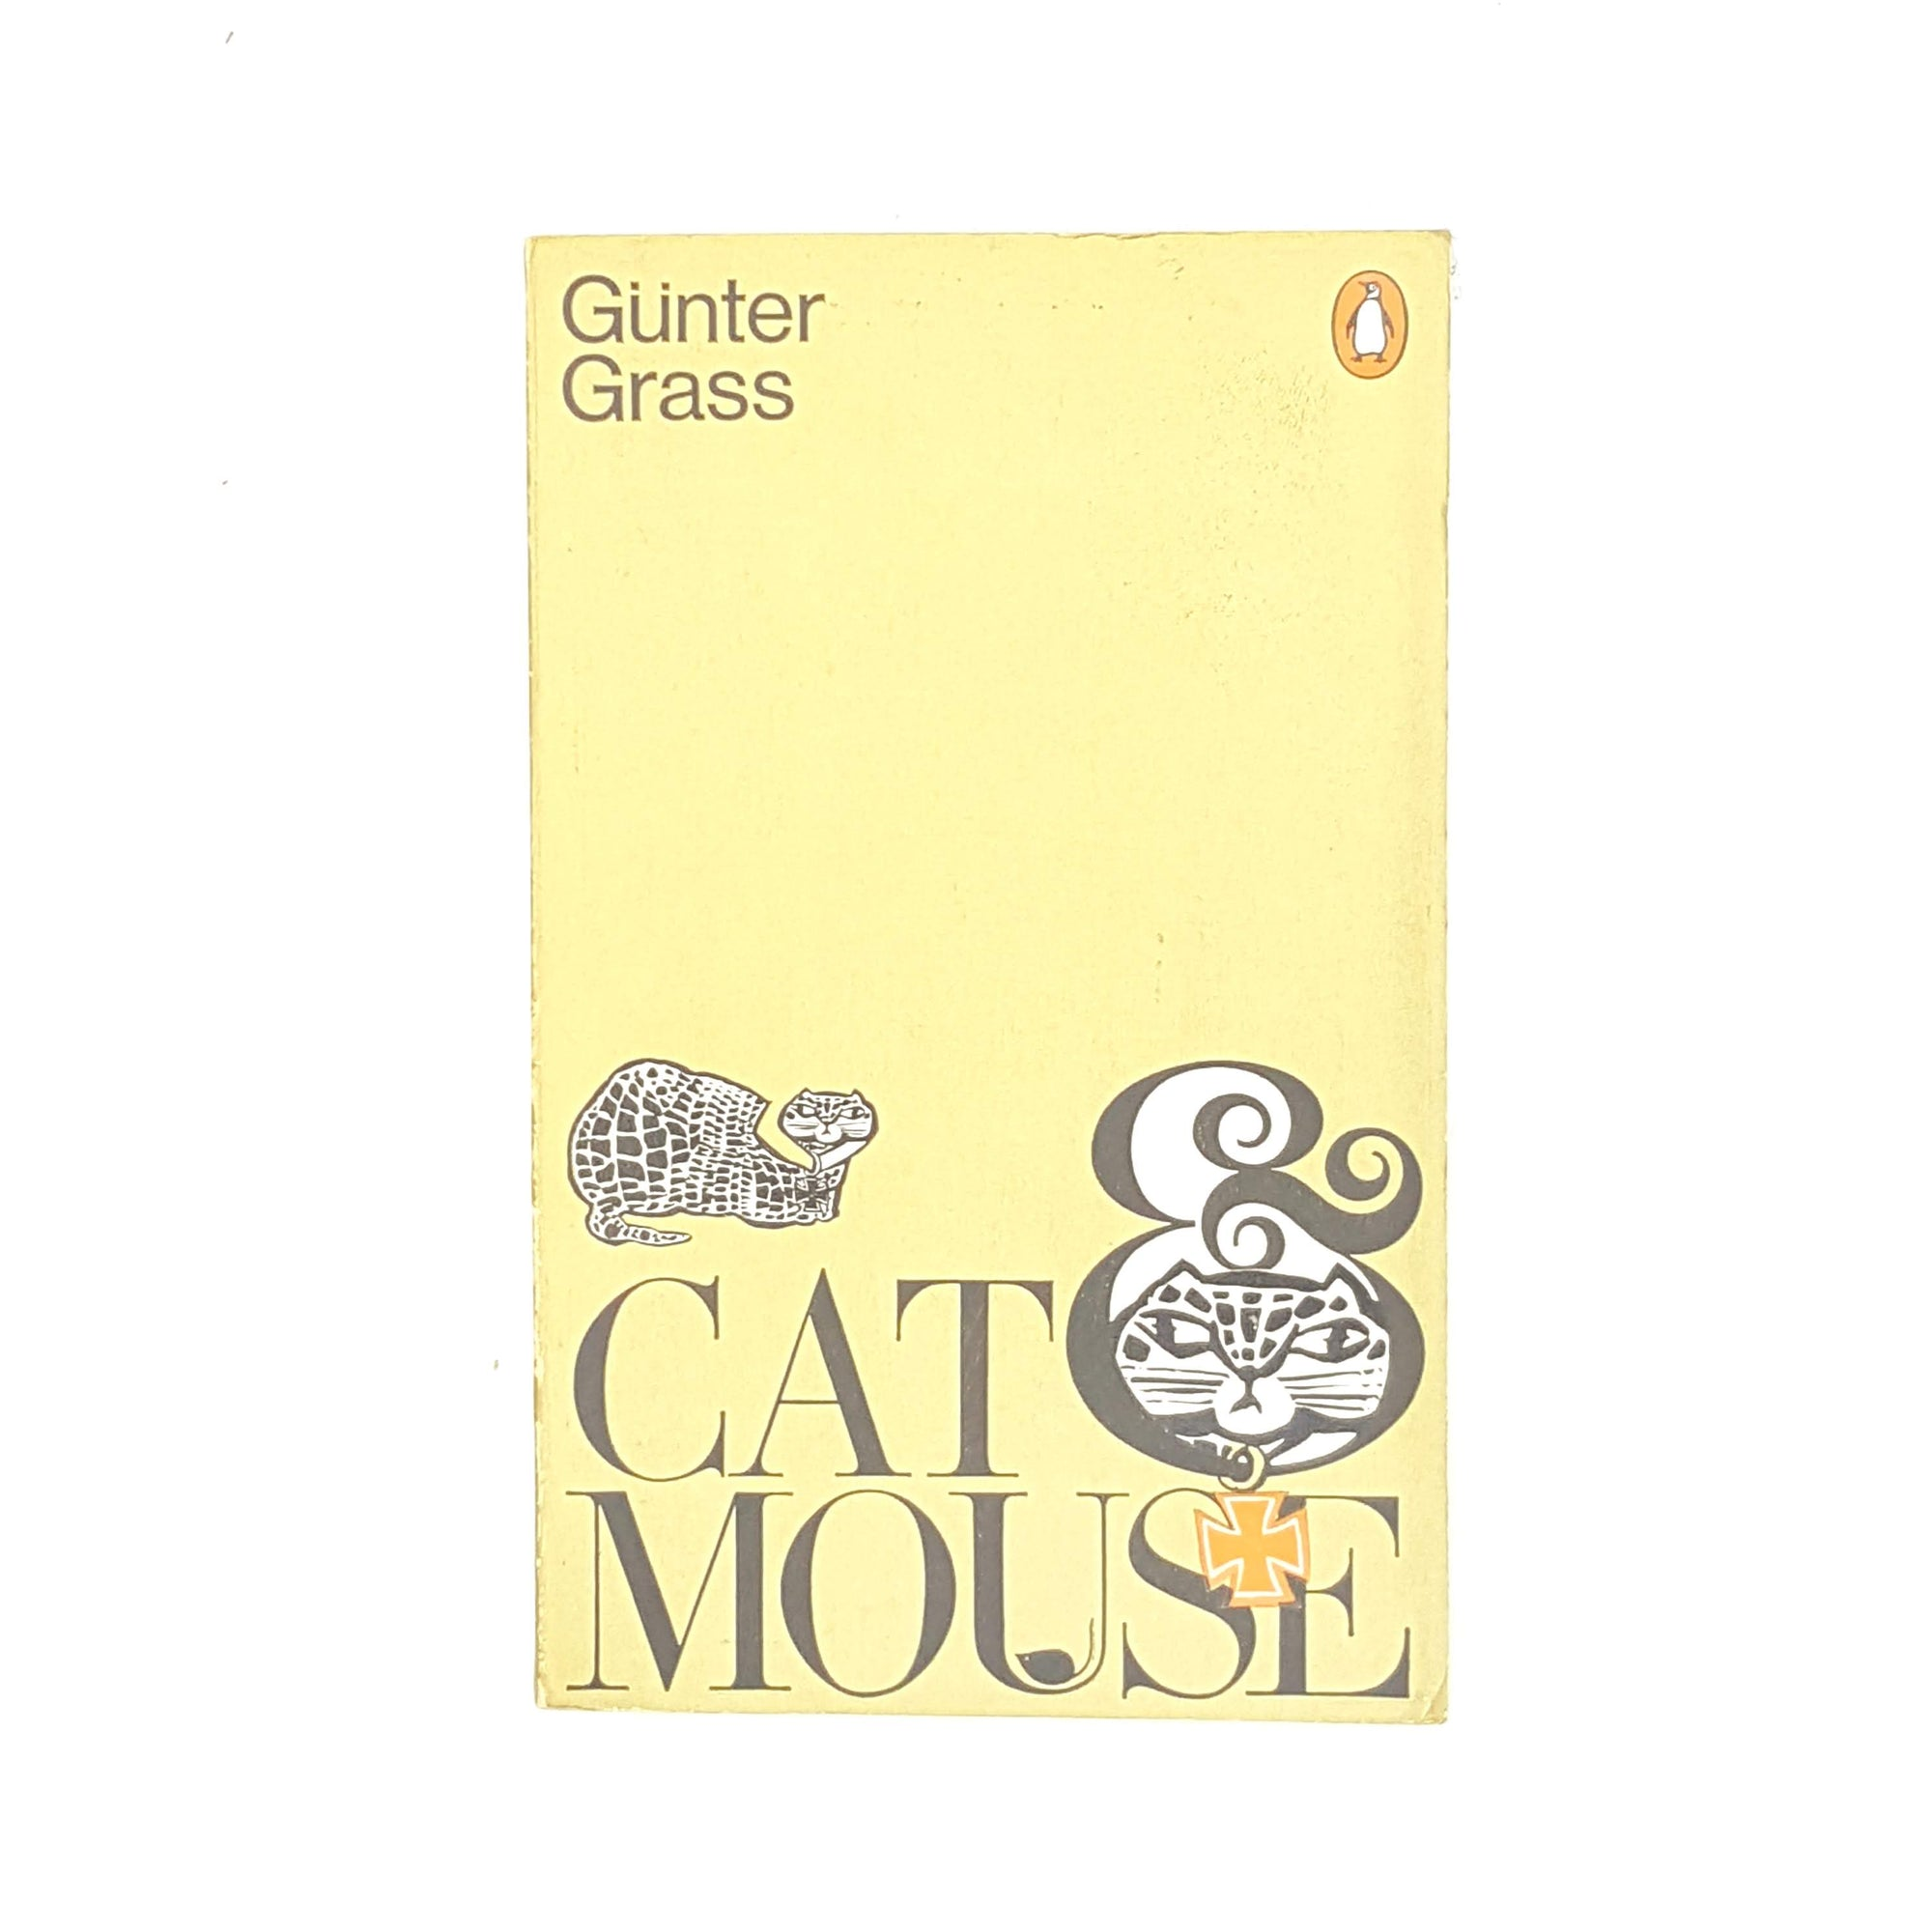 cat-and-mouse-country-house-library-decorative-vintage-thrift-penguin-gold-classic-patterned-gunter-grass-old-1971-books-antique-